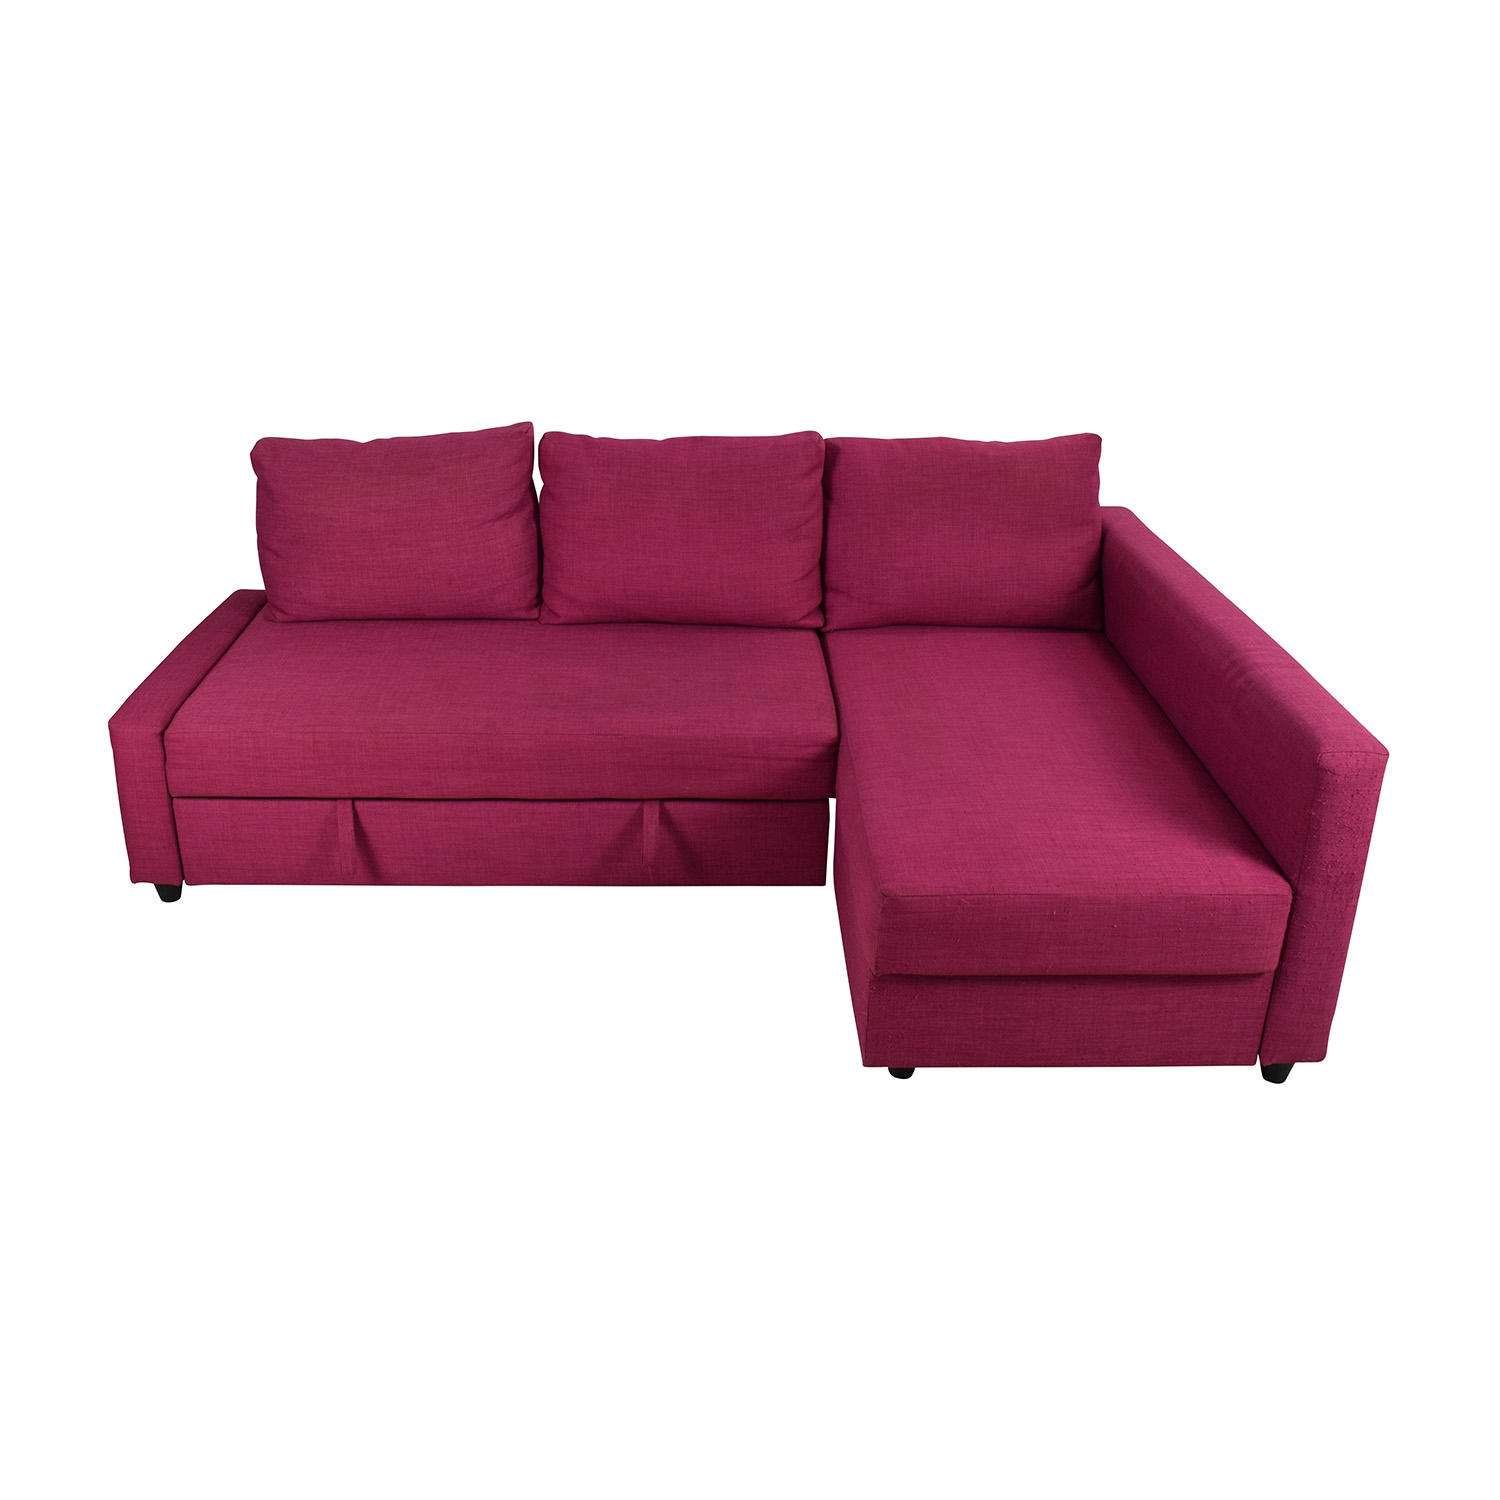 pink sofa ikea s derhamn corner section samsta light pink ikea thesofa. Black Bedroom Furniture Sets. Home Design Ideas